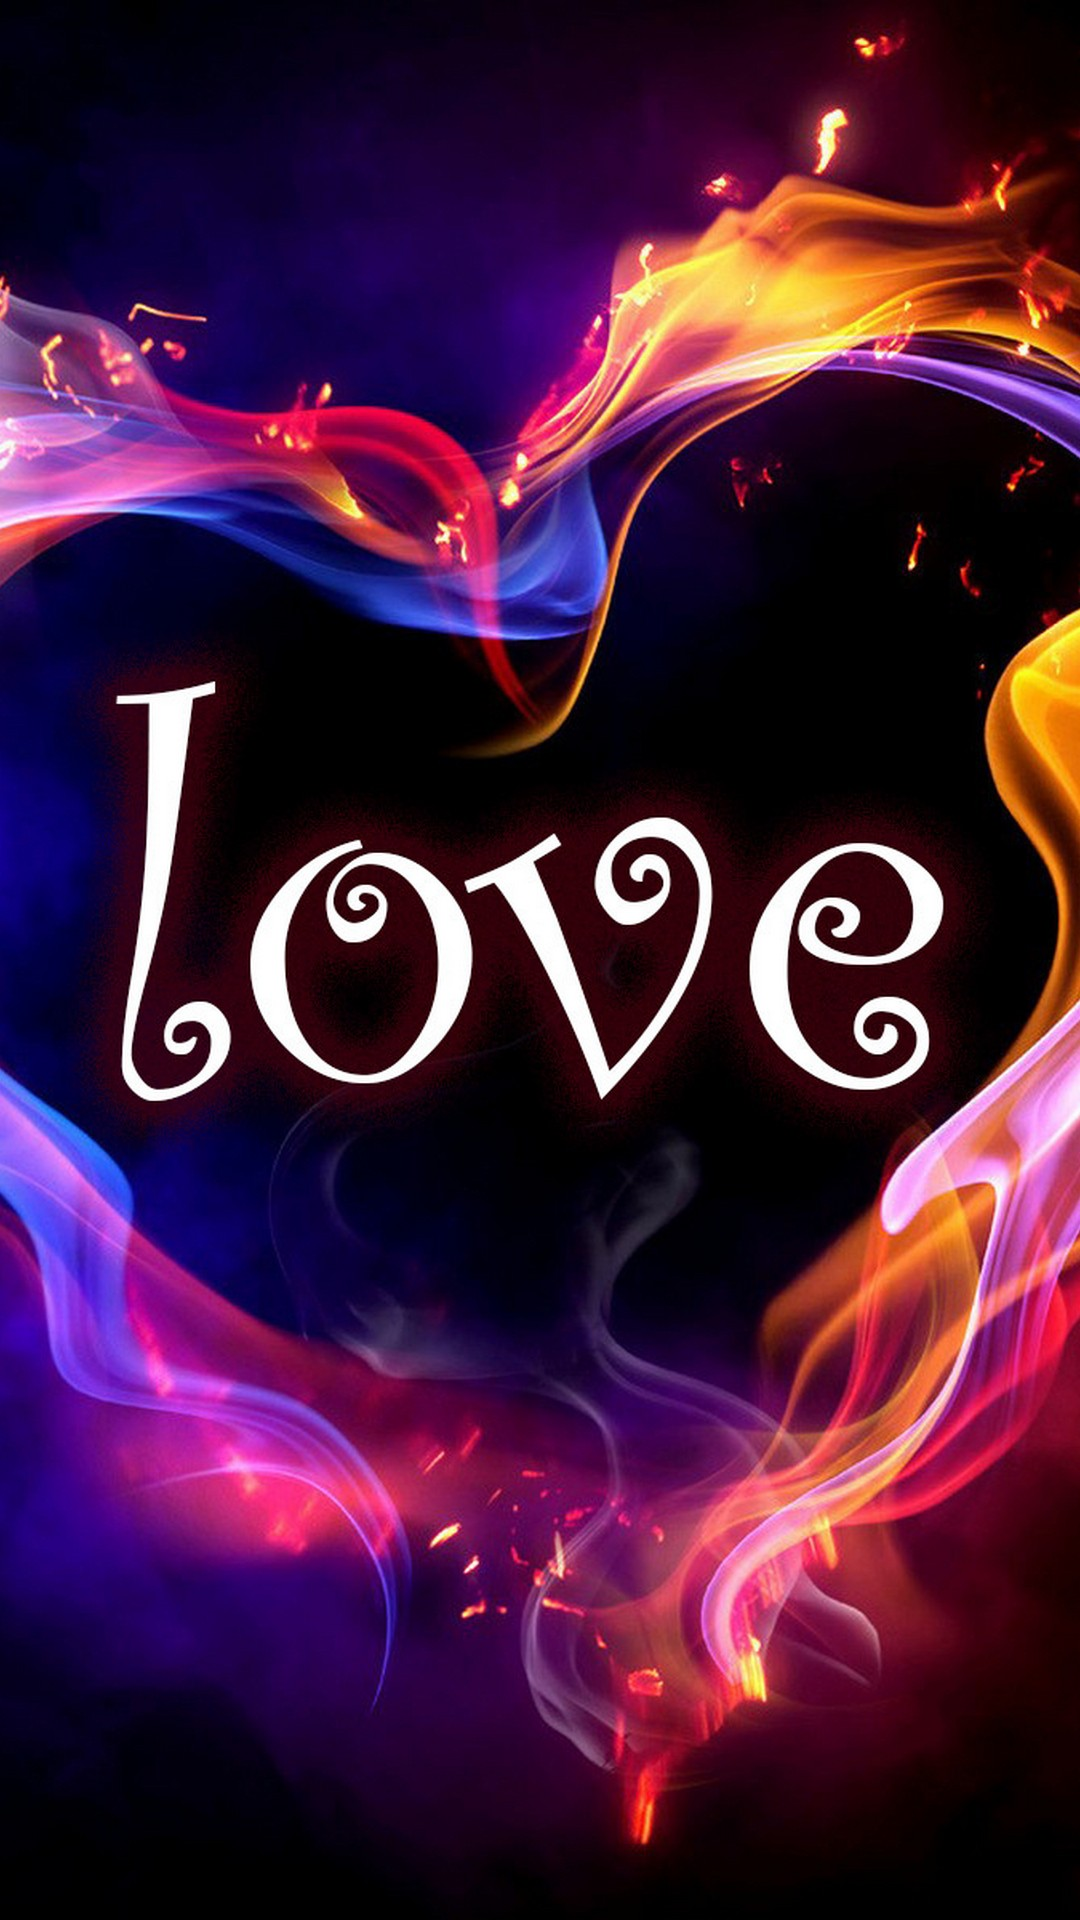 Love HD Wallpapers For Android   2020 Android Wallpapers 1080x1920